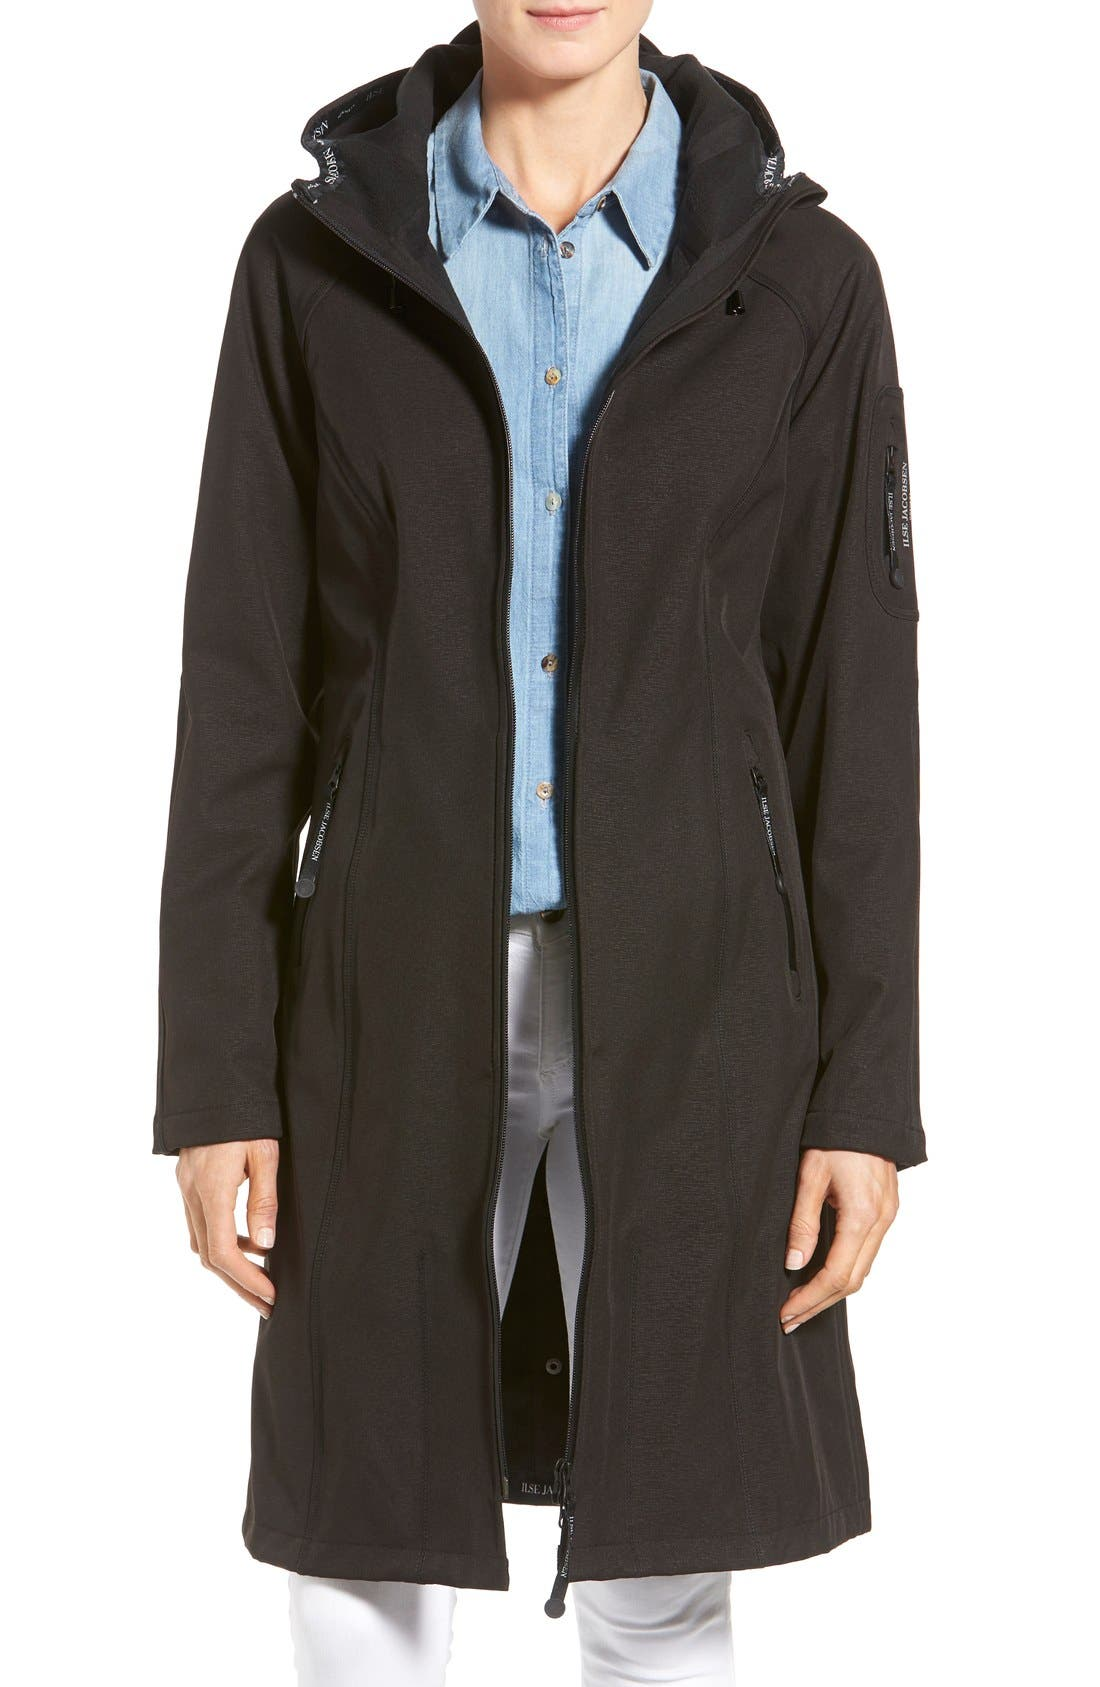 Ilse Jacobsen Long Hooded Raincoat